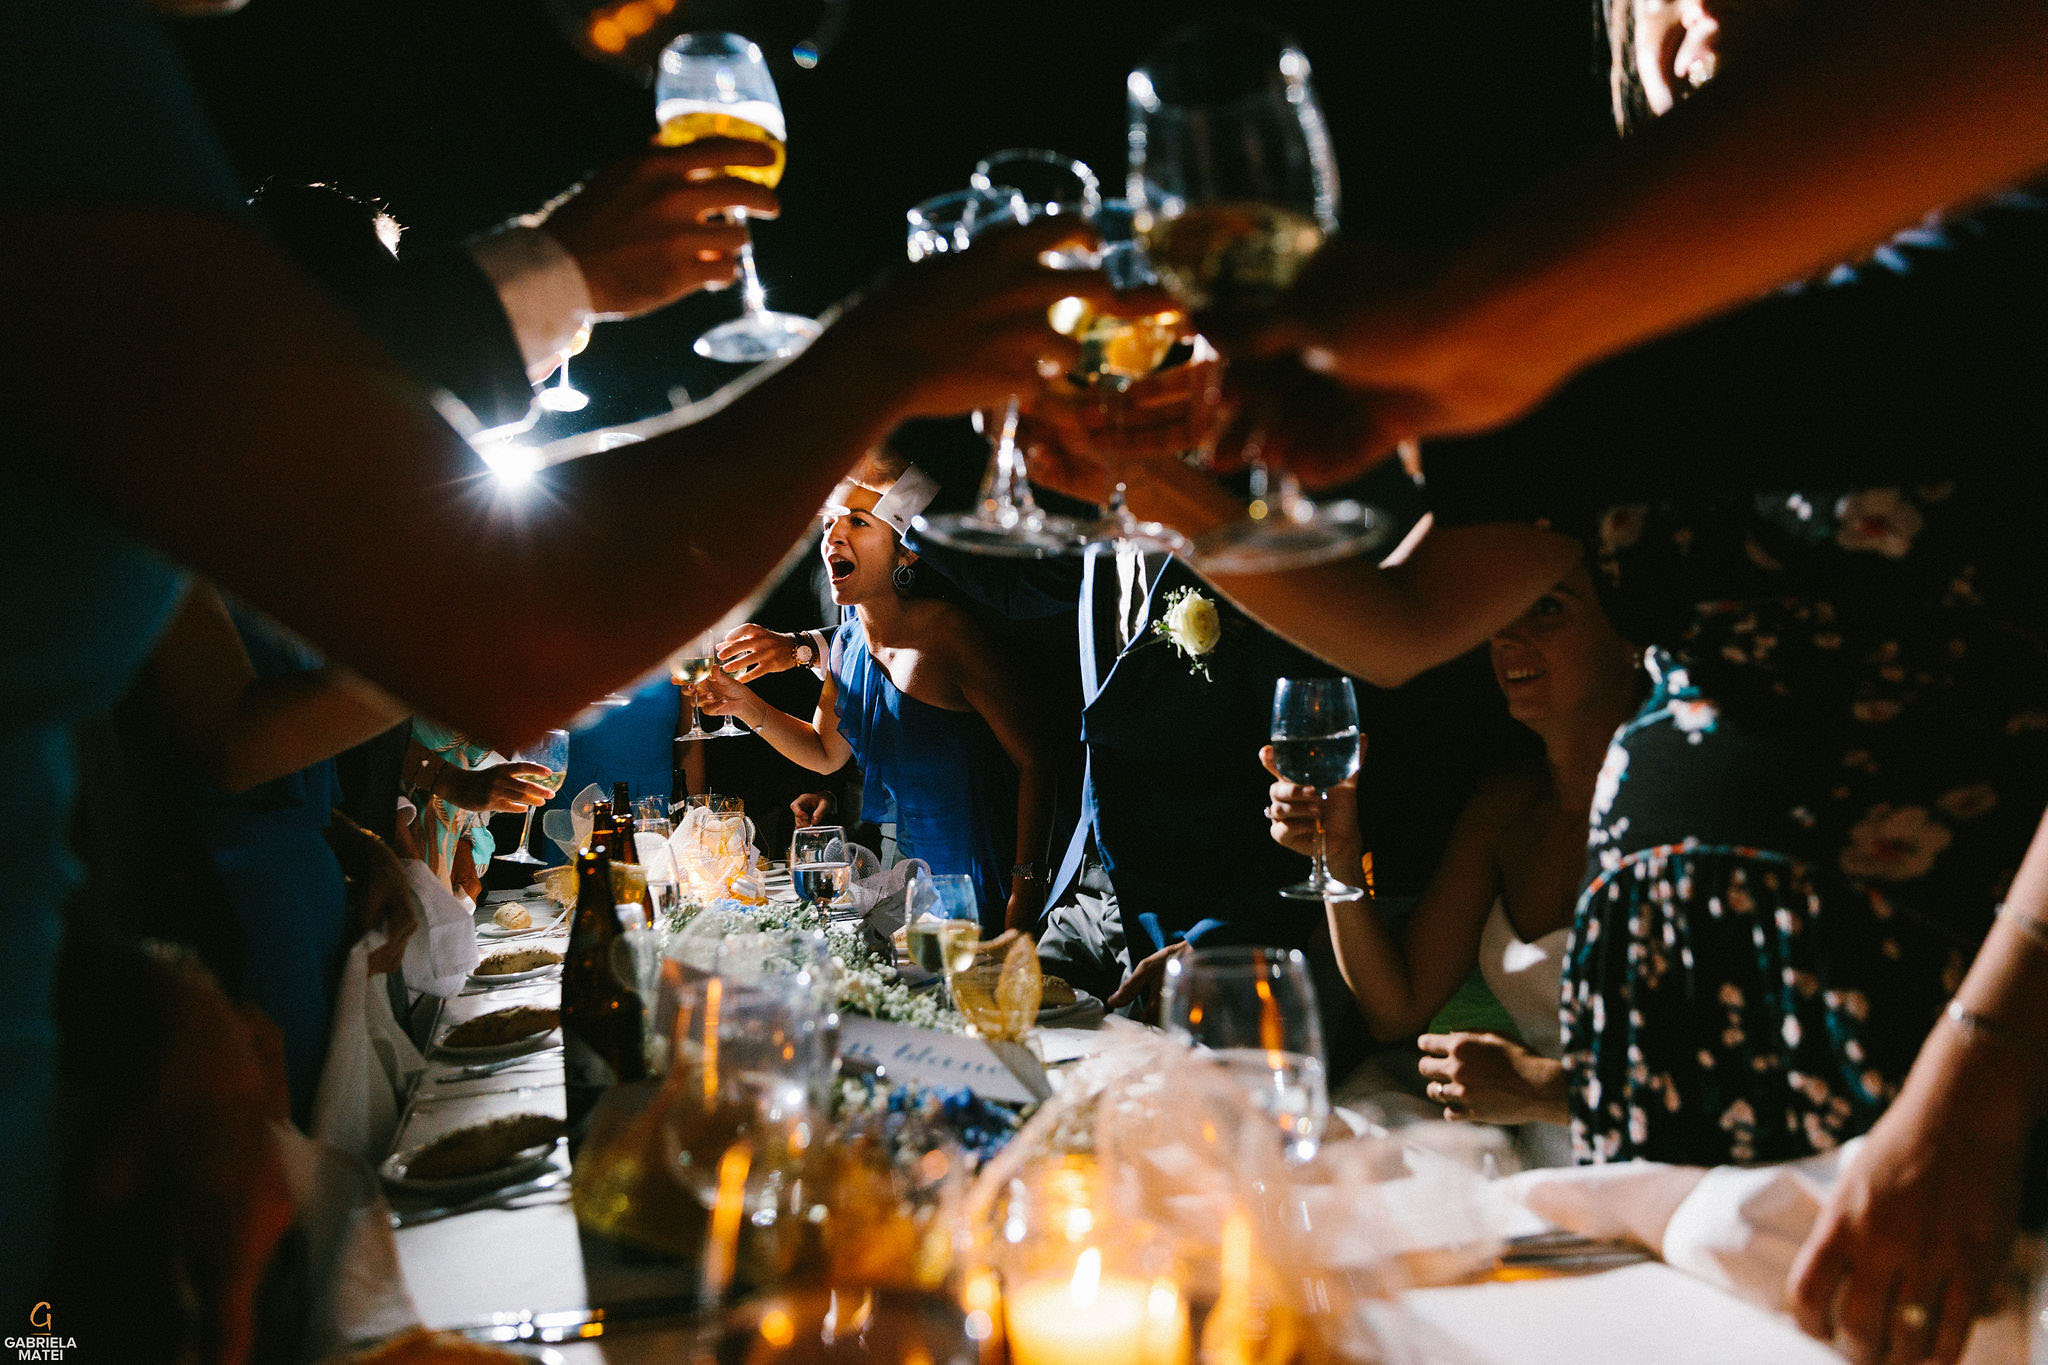 guests raising glasses together during wedding reception on Kea island